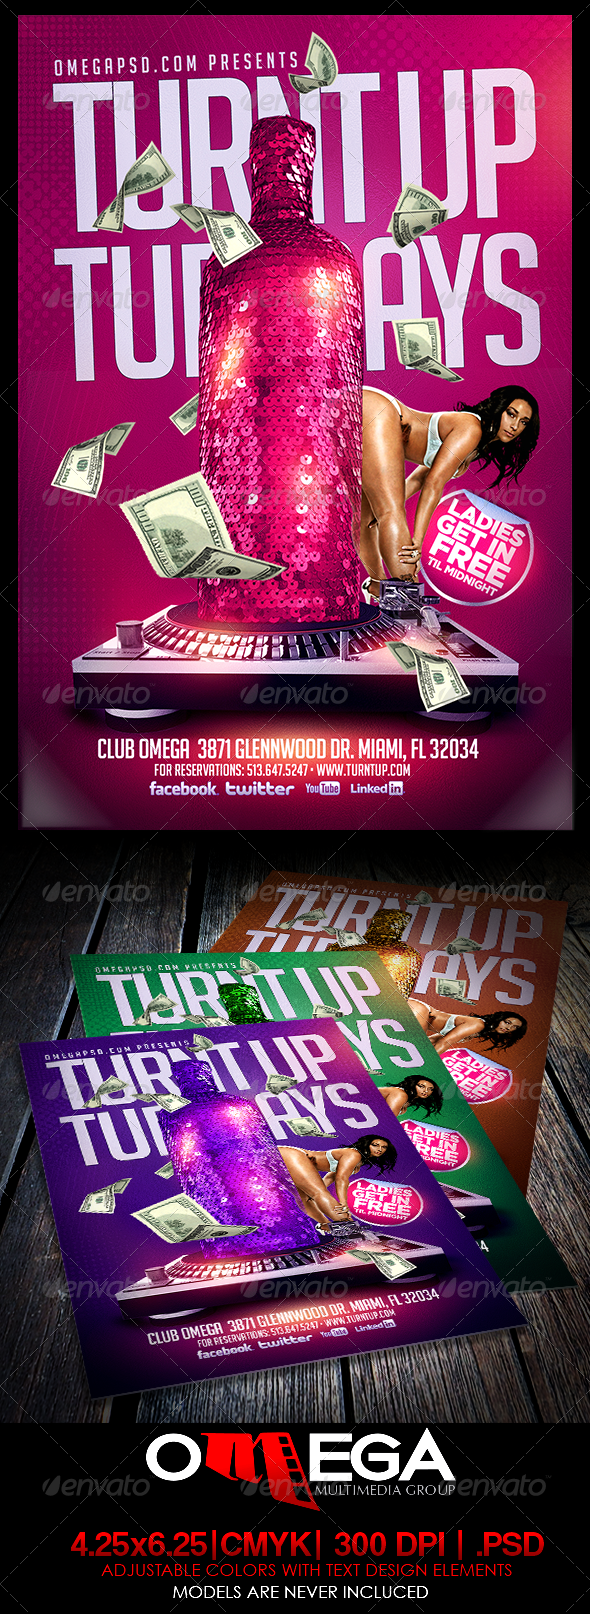 Turnt Up Tuesdays - Events Flyers